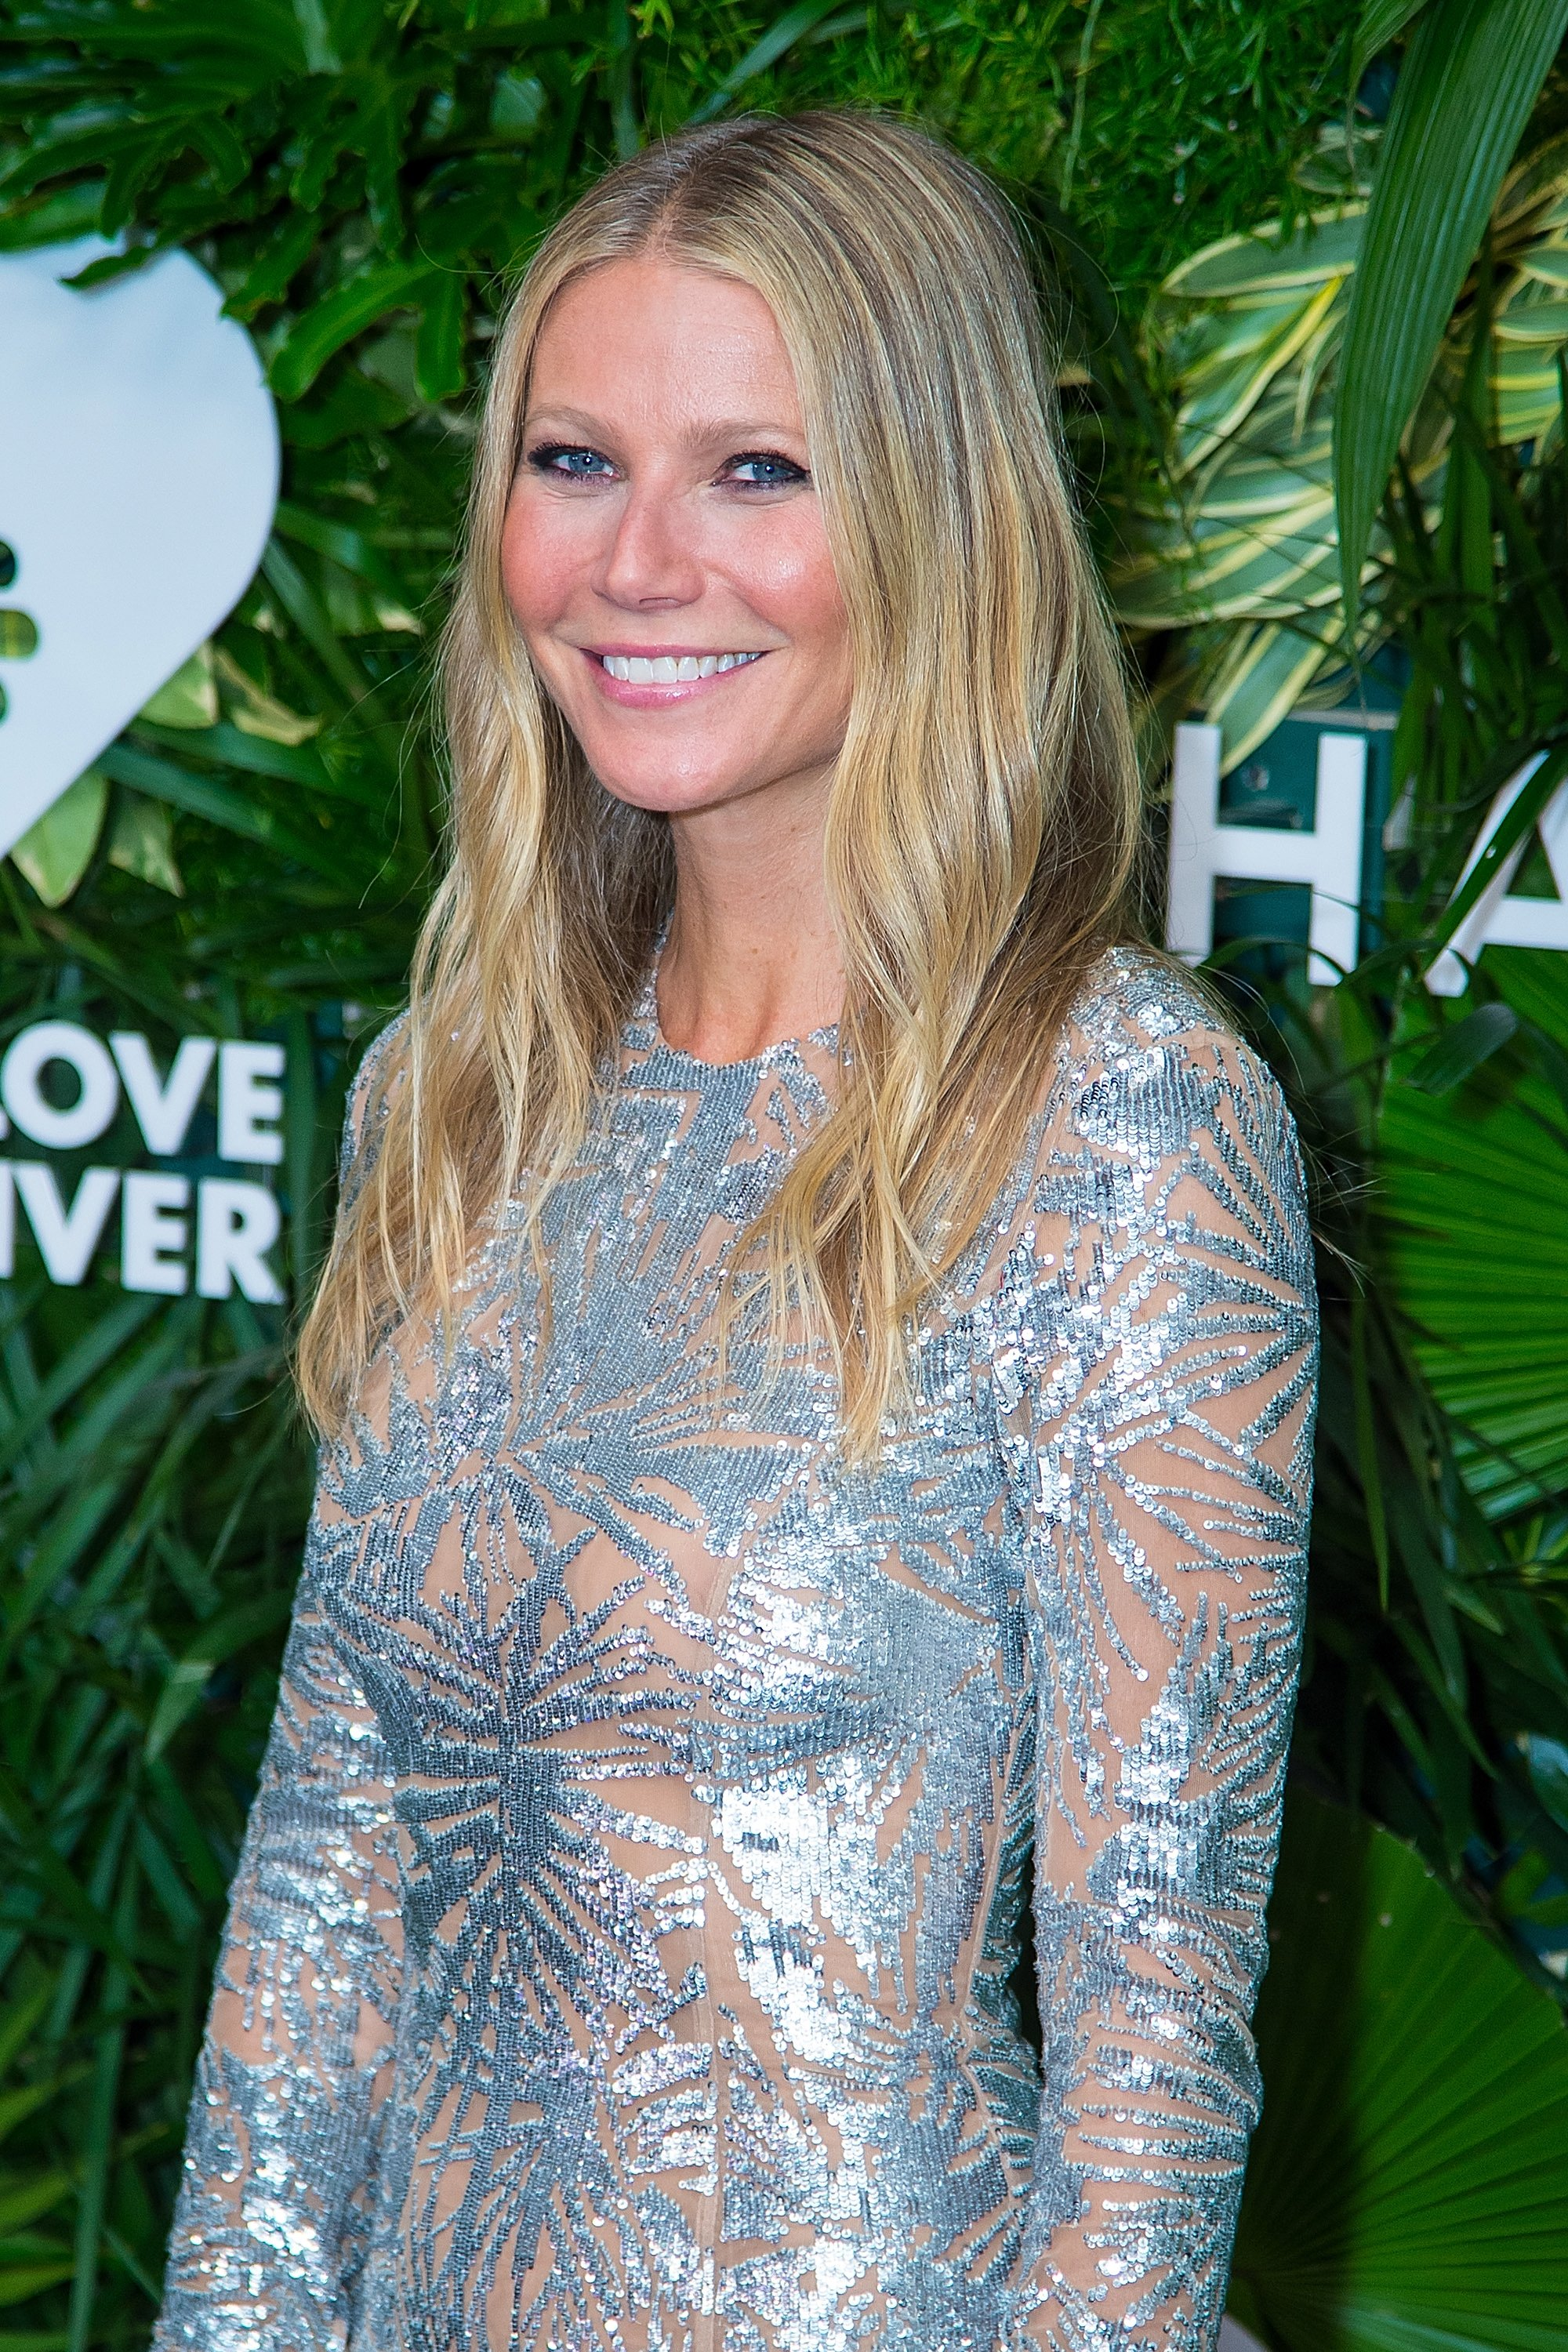 Image Credits: Getty Images / Michael Stewart | Gwyneth Paltrow attends the 11th Annual God's Love We Deliver Golden Heart Awards at Spring Studios on October 16, 2017 in New York City.